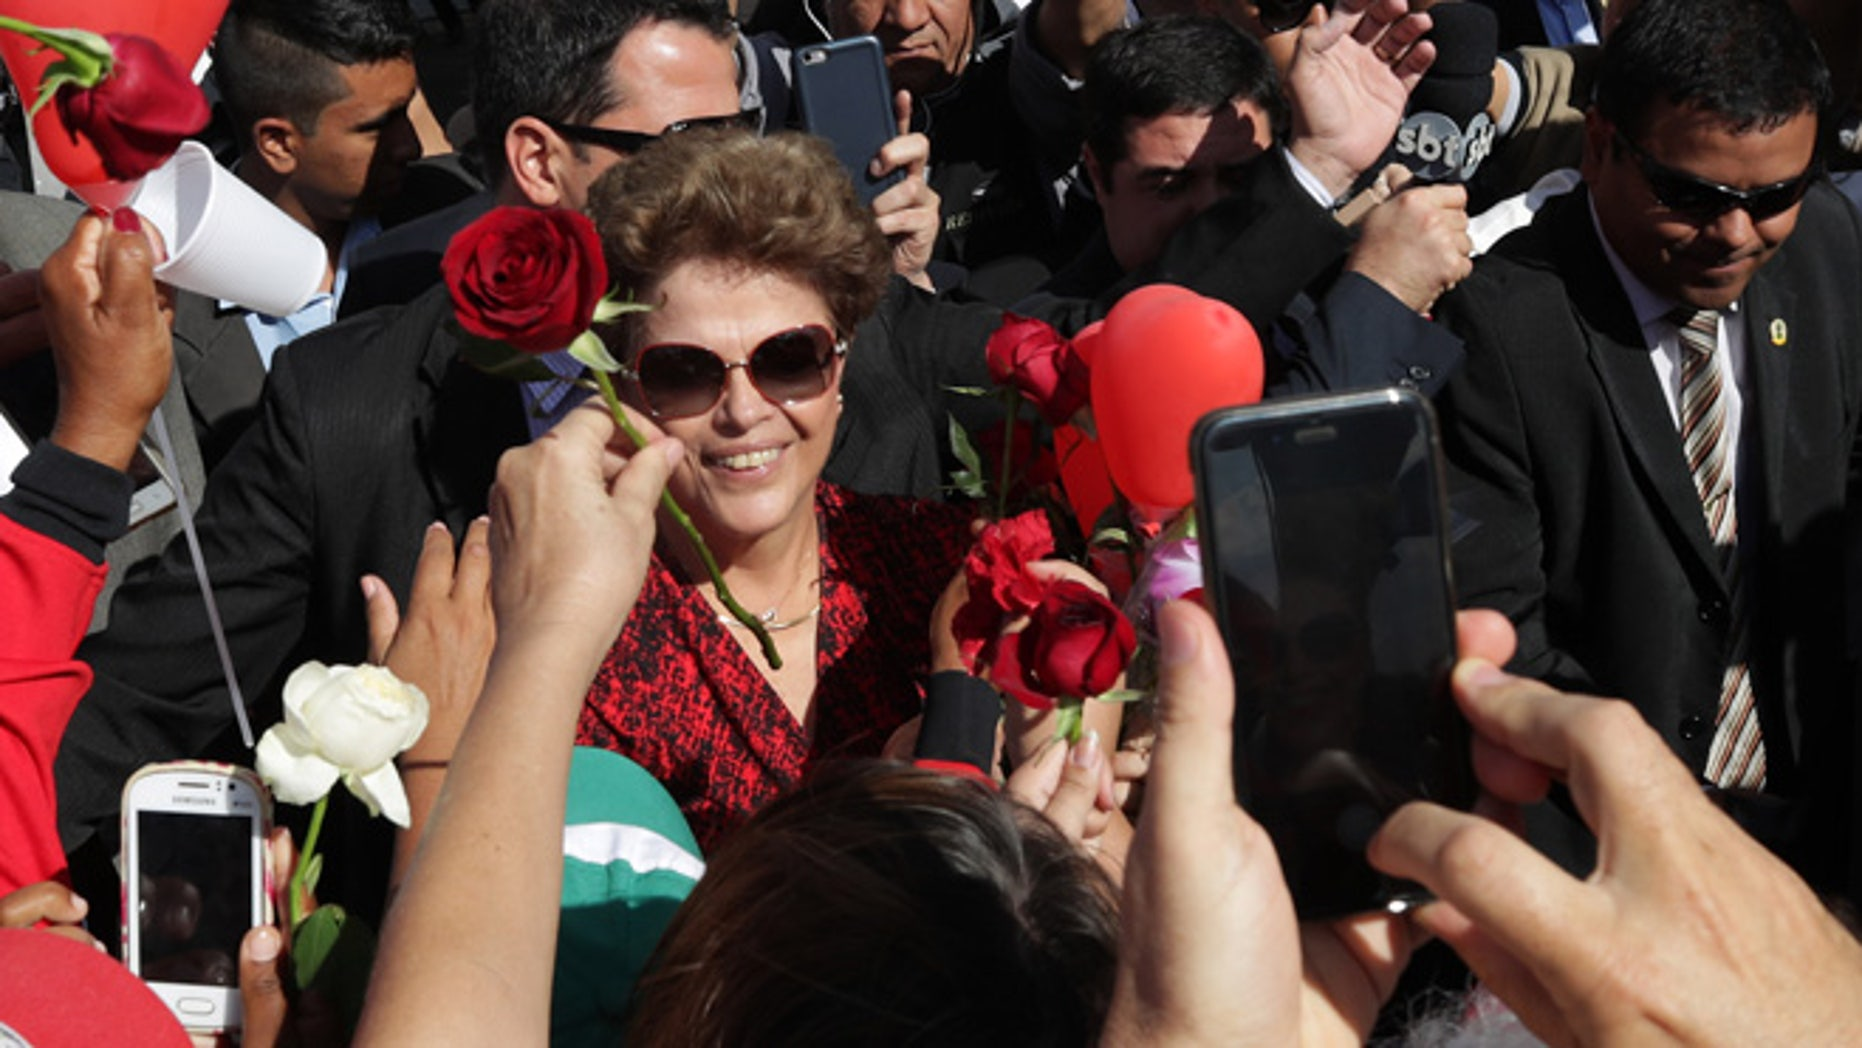 Brazil's impeached President Dilma Rousseff receives flowers from supporters as she leaves the presidential residence, on Sept. 6, 2016.